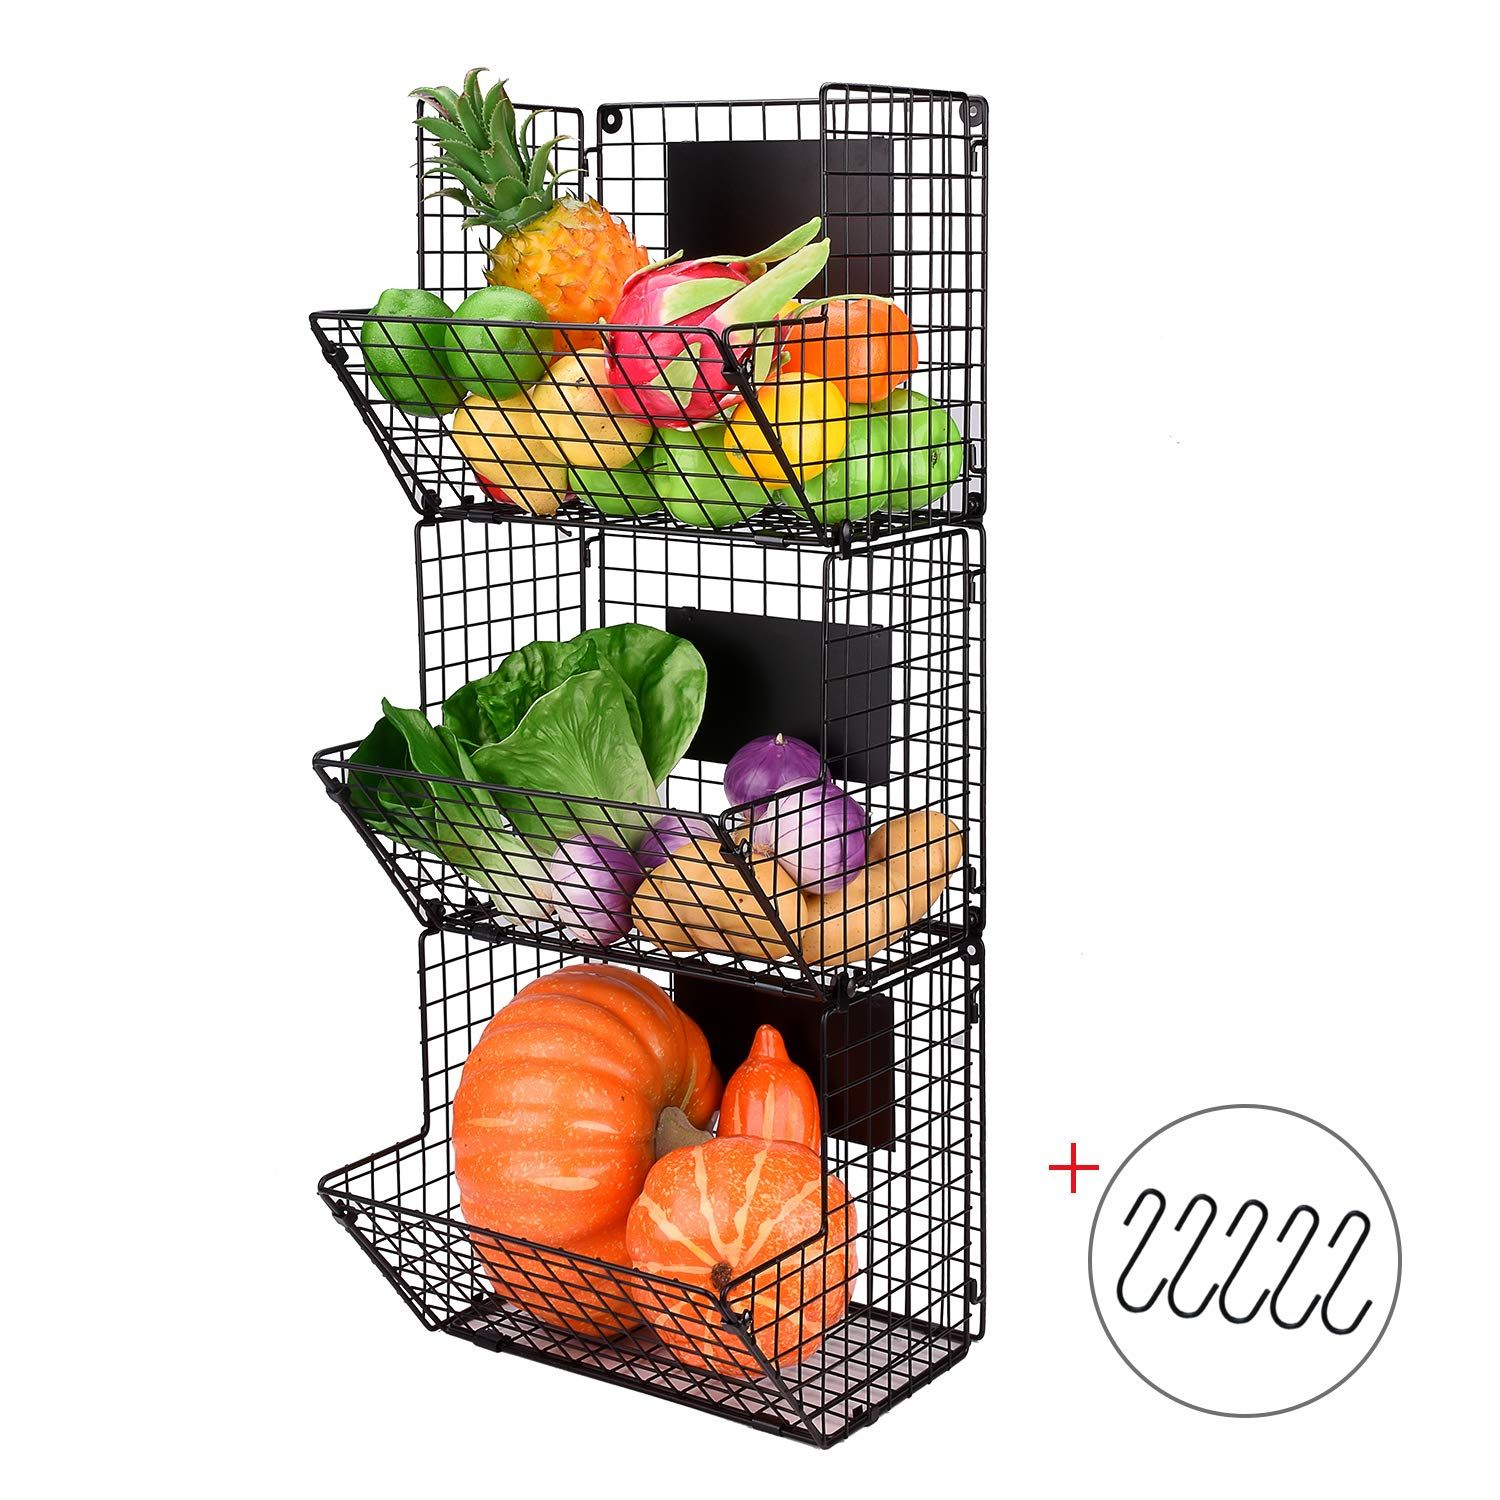 X Cosrack Metal Wire Basket Wall Mount 3 Tier Wall Storage Basket Organizer With Hanging Hooks Chalkbo With Images Baskets On Wall Wall Basket Storage Wire Basket Storage